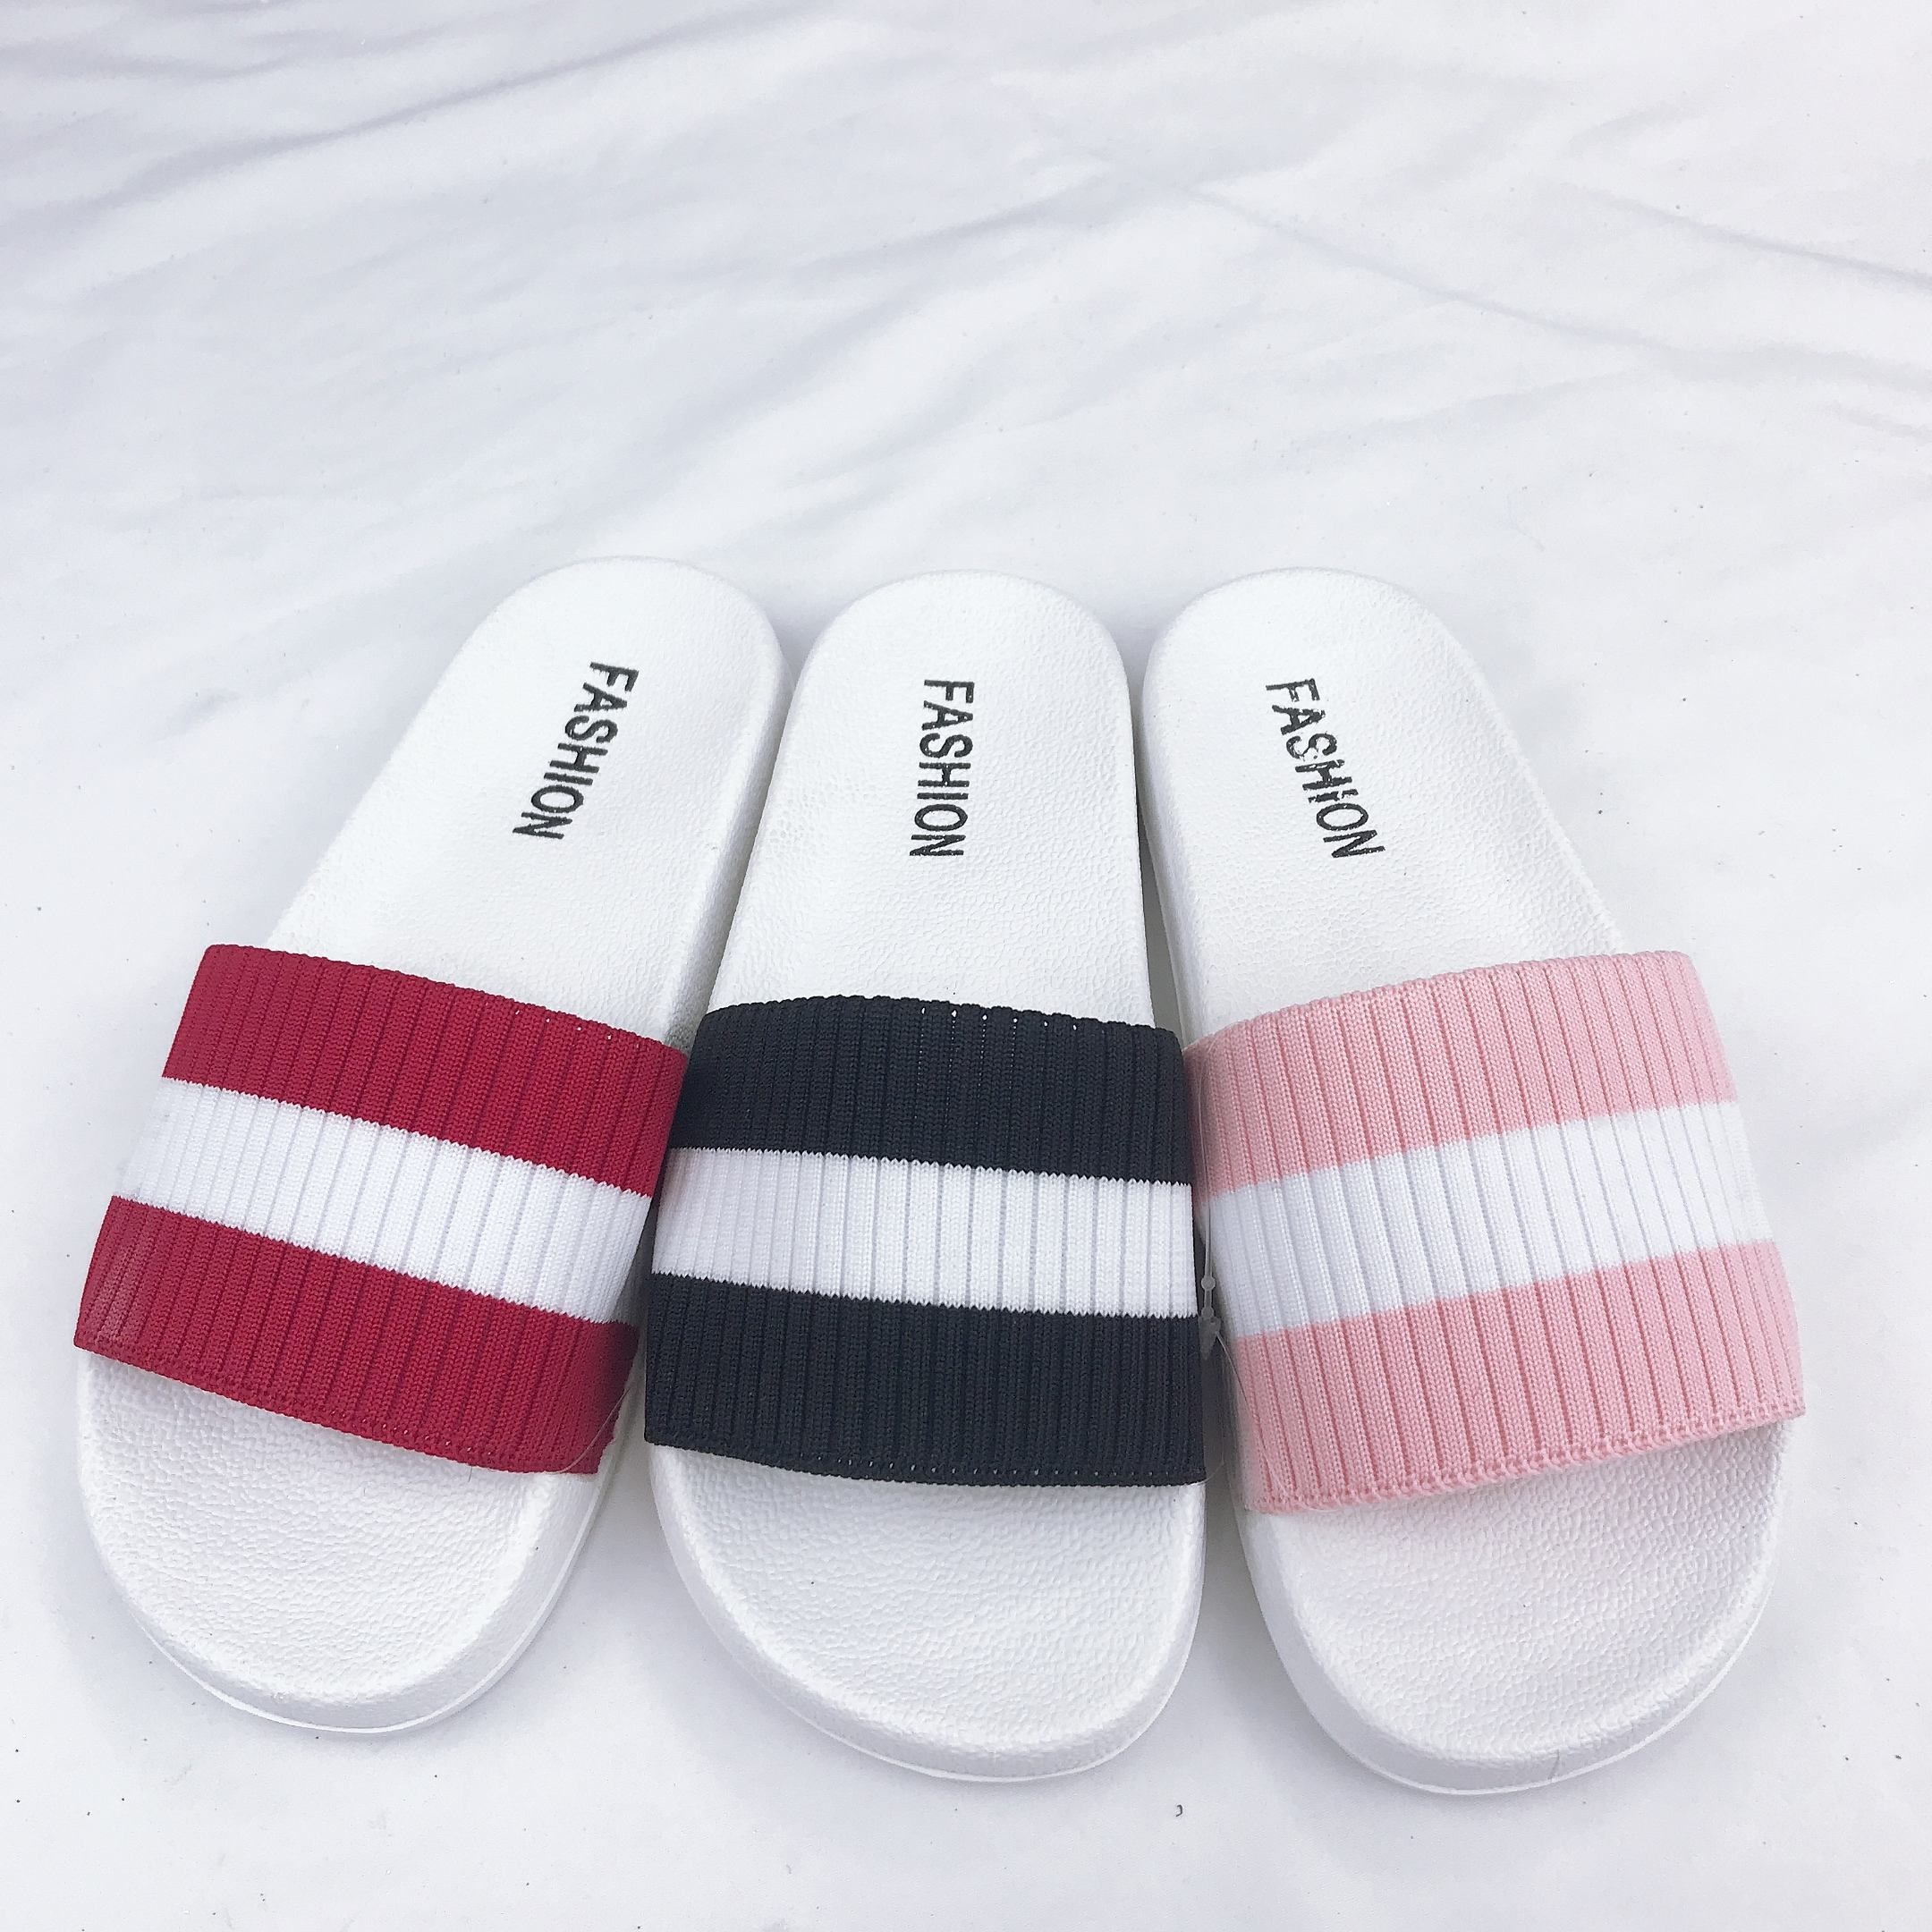 Cheap Wholesale PVC Bathroom Slipper Anti-Slip Indoor Home House Slippers Women